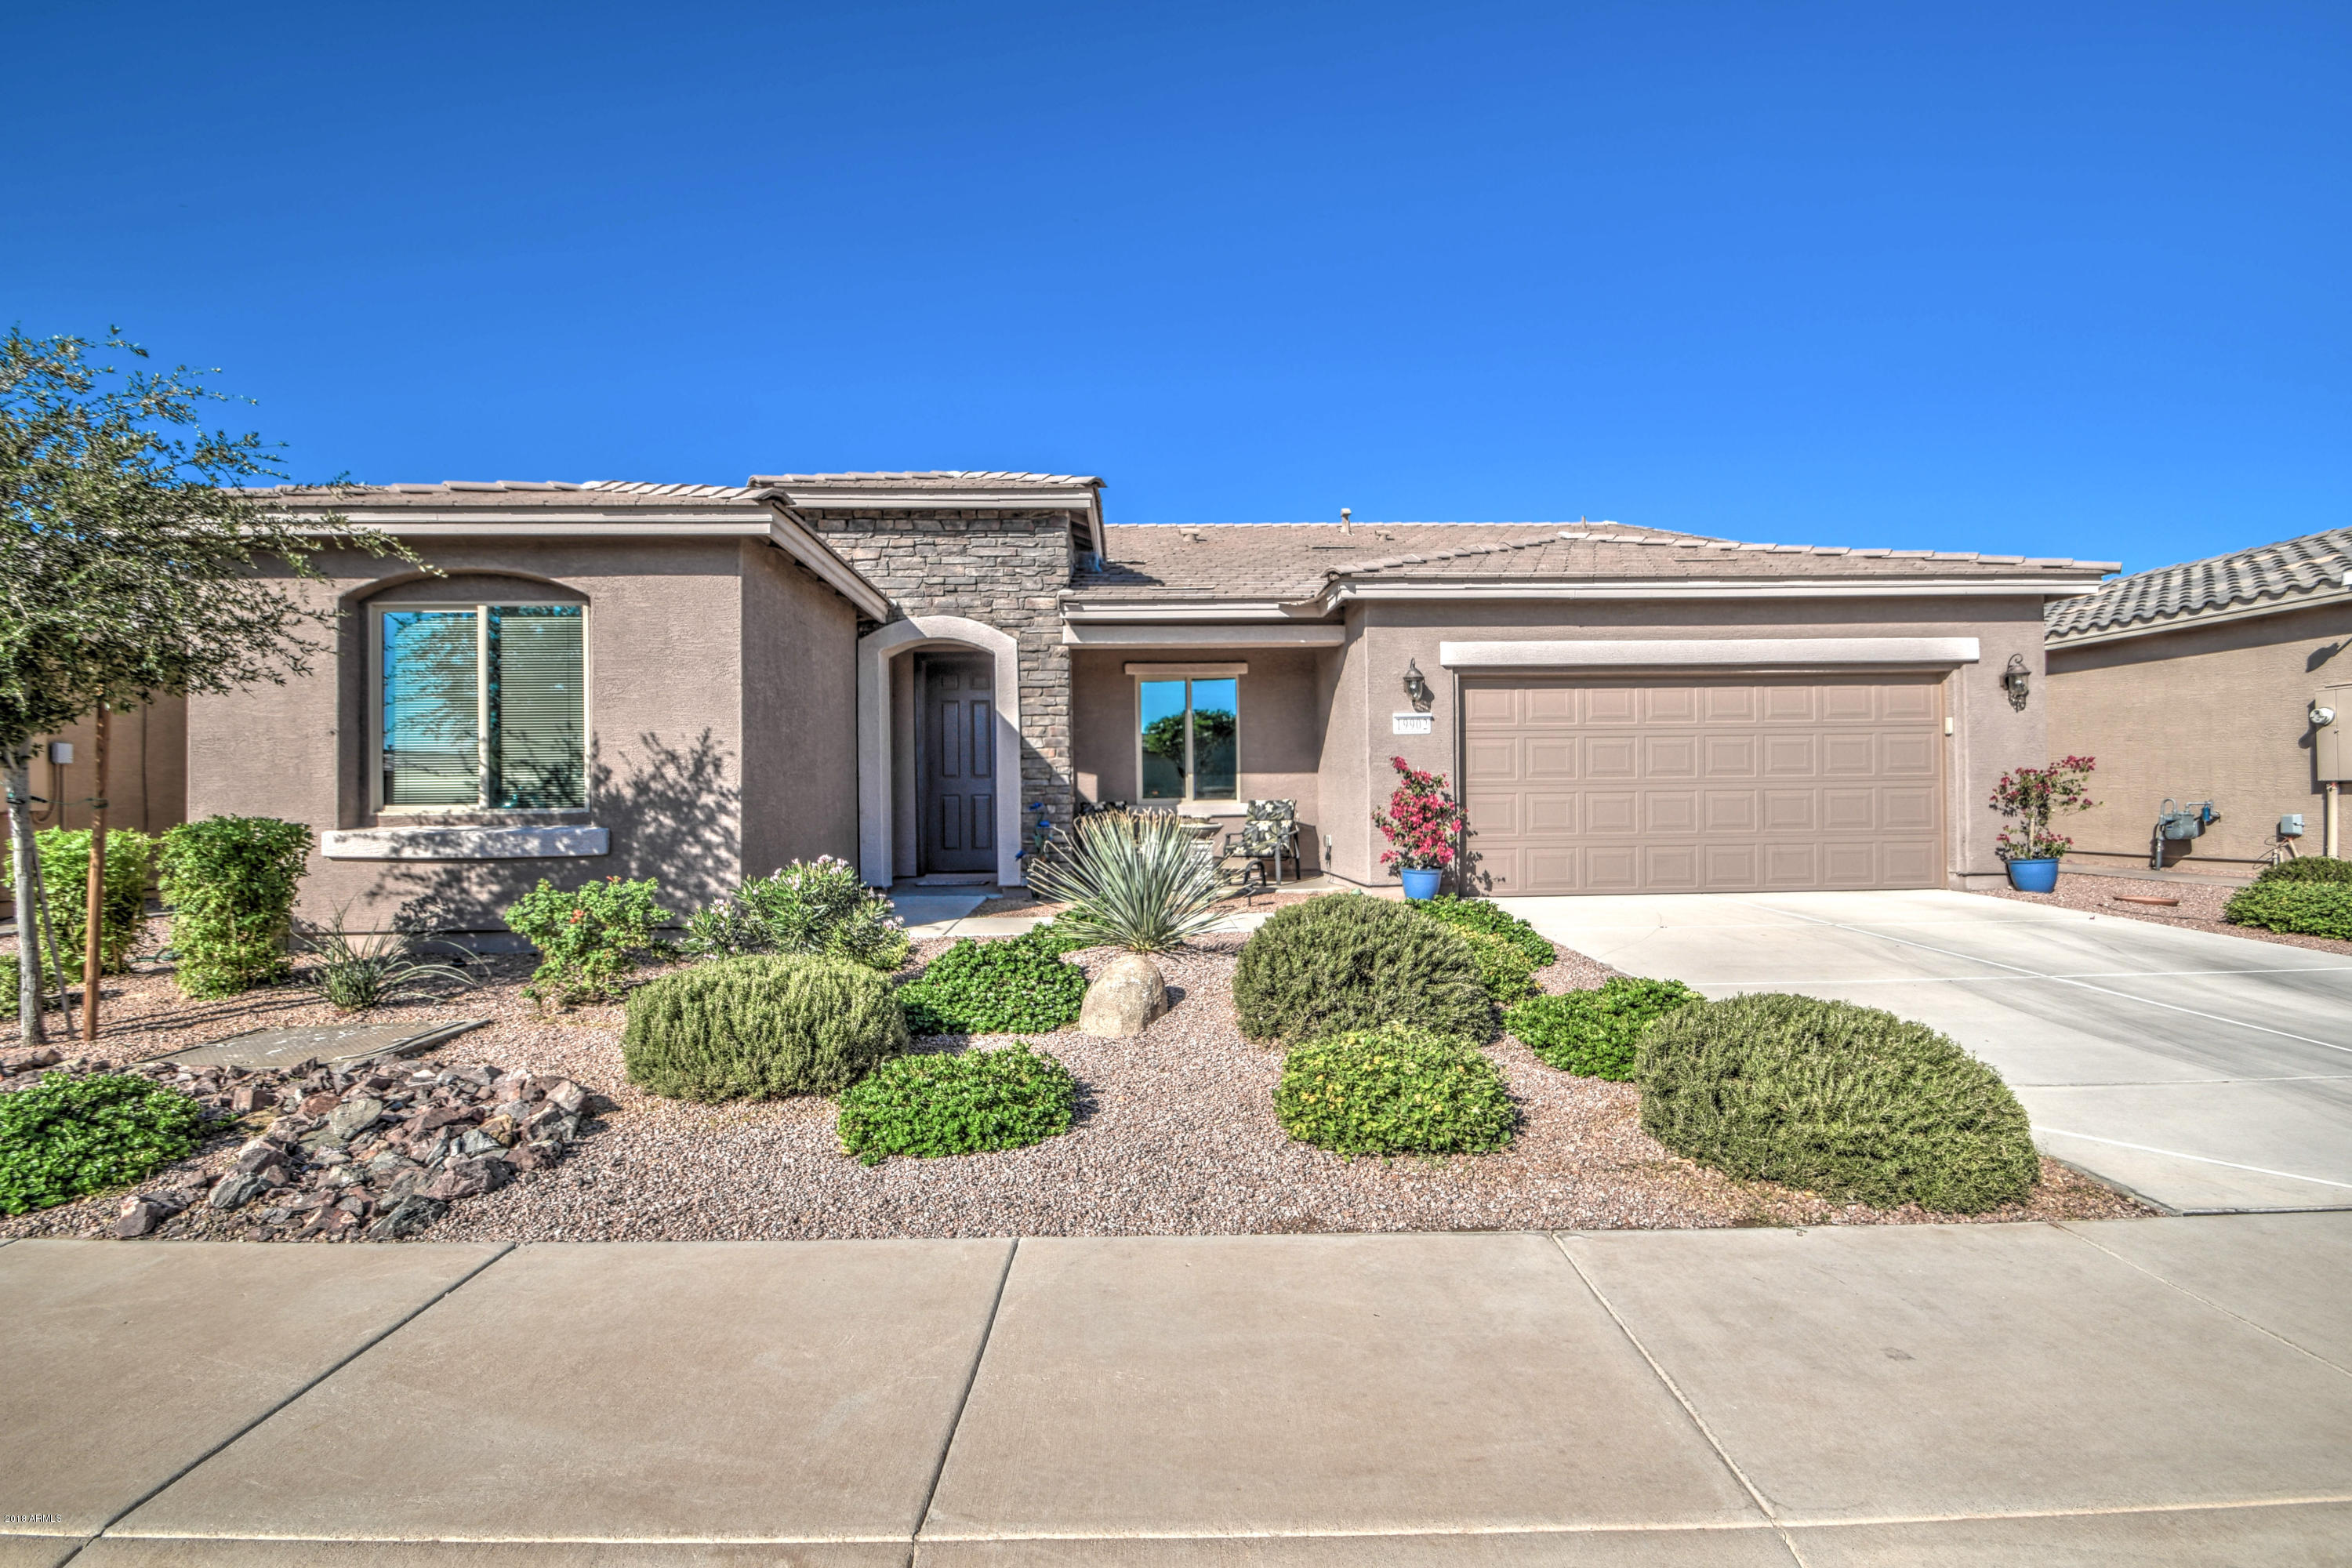 Photo for 19902 N Pinochle Lane, Maricopa, AZ 85138 (MLS # 5818894)